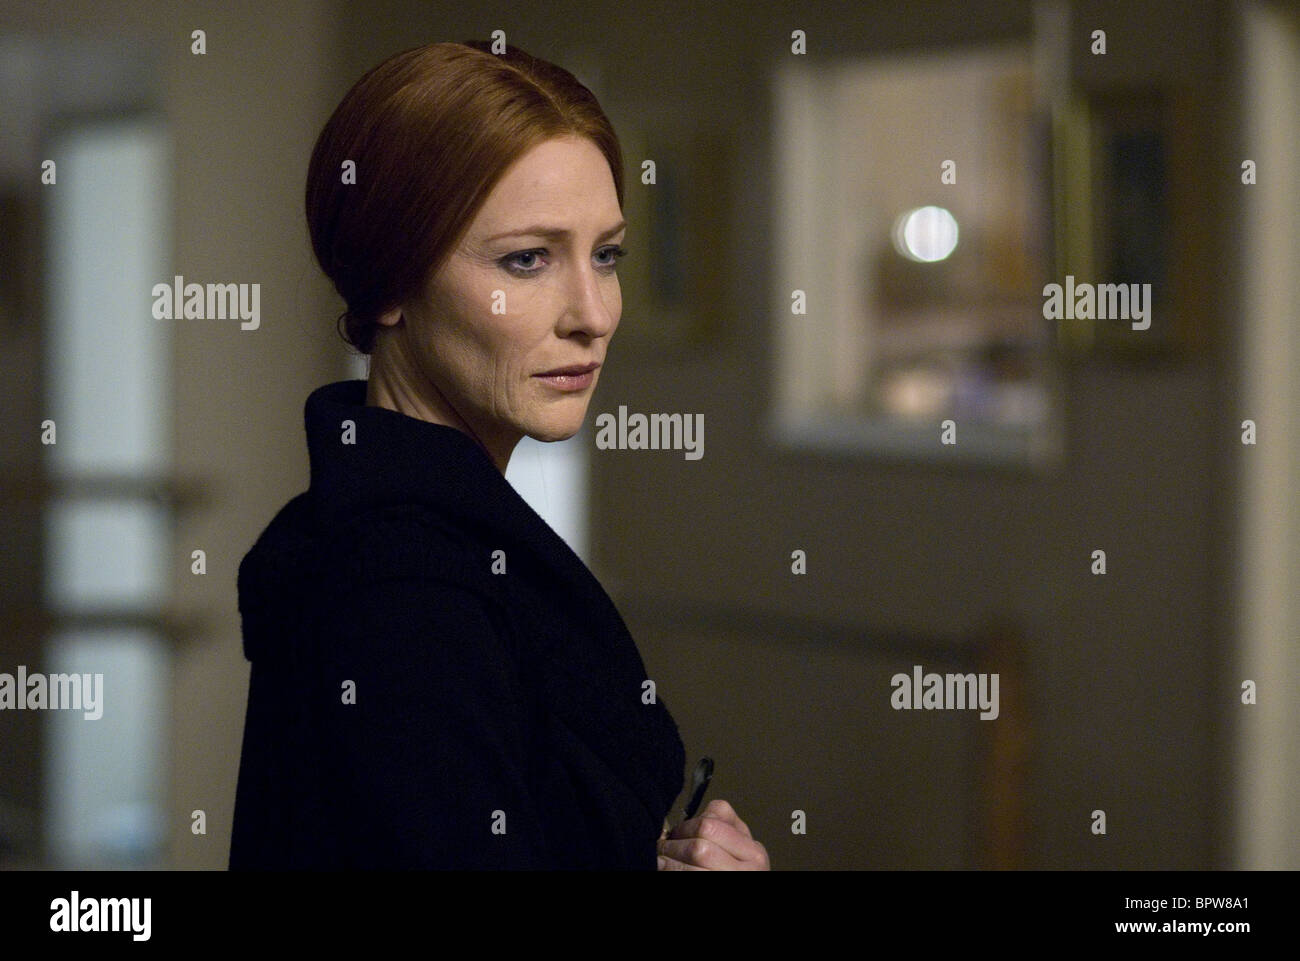 Cate Blanchett The Curious Case Of Benjamin Button 2008 Stock Photo Alamy